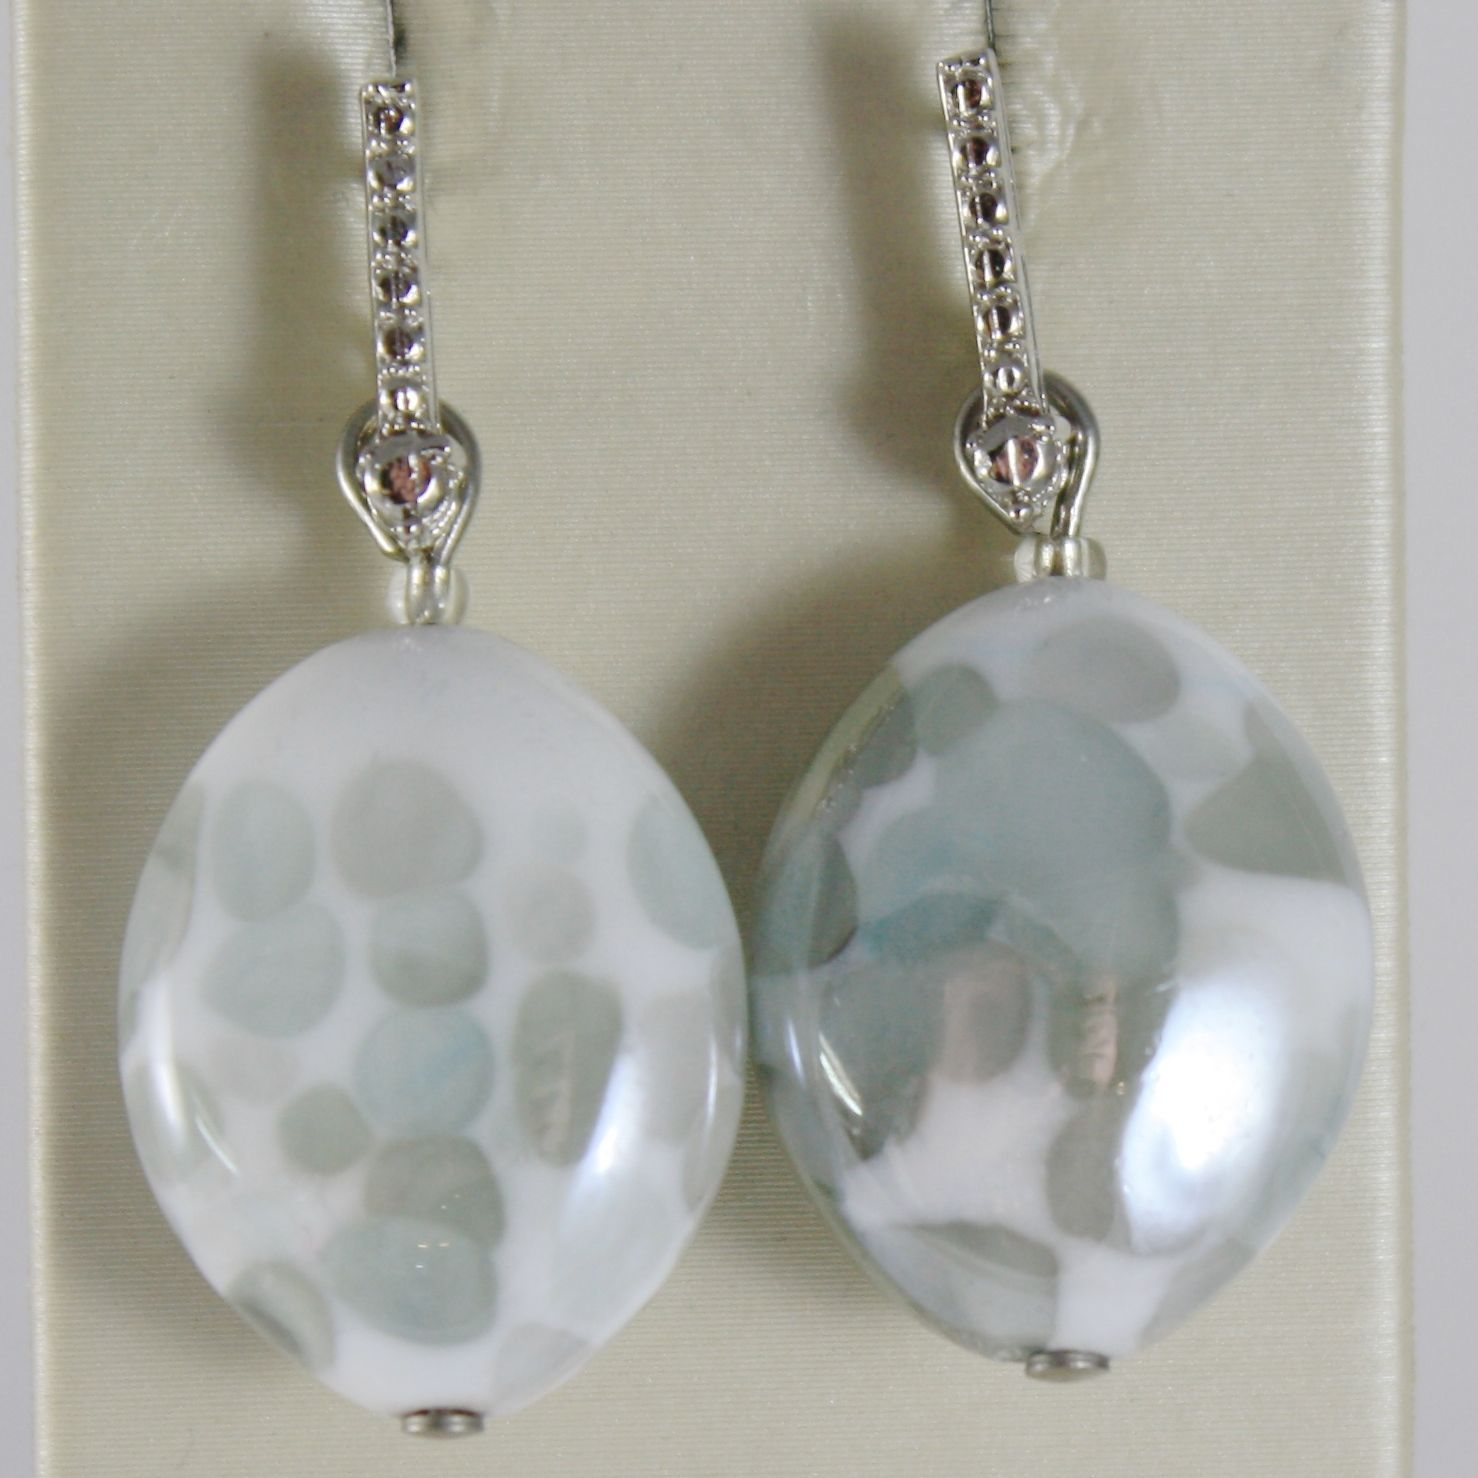 ANTICA MURRINA VENEZIA PENDANT EARRINGS, WHITE GRAY LEOPARD EFFECT OVAL OVALS